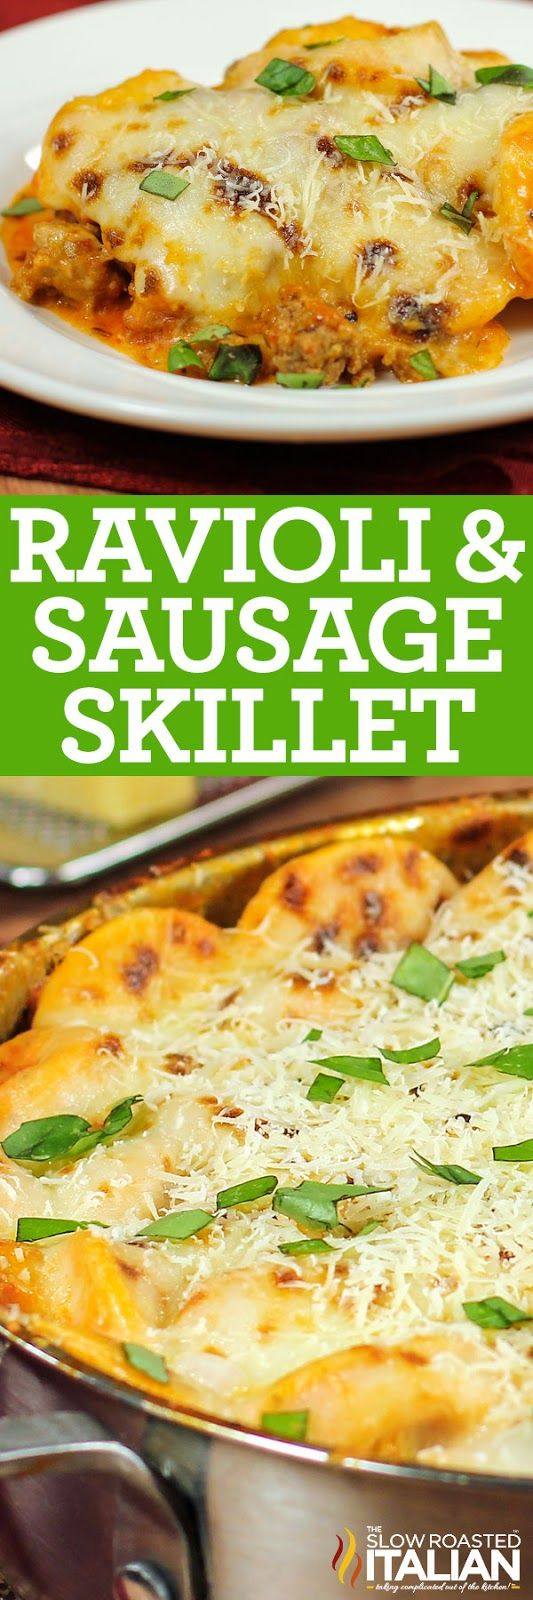 Ravioli and Sausage Skillet in 30 Minutes! Loaded with a mind blowing flavor explosion from pasta, cheese, sausage and tomatoes. My meat and potatoes loving husband insisted that this was the meal I serve at our holiday get togethers.  Looking for an easy recipe that makes an impressive holiday dinner in no time?  Ravioli and Sausage Skillet is it!